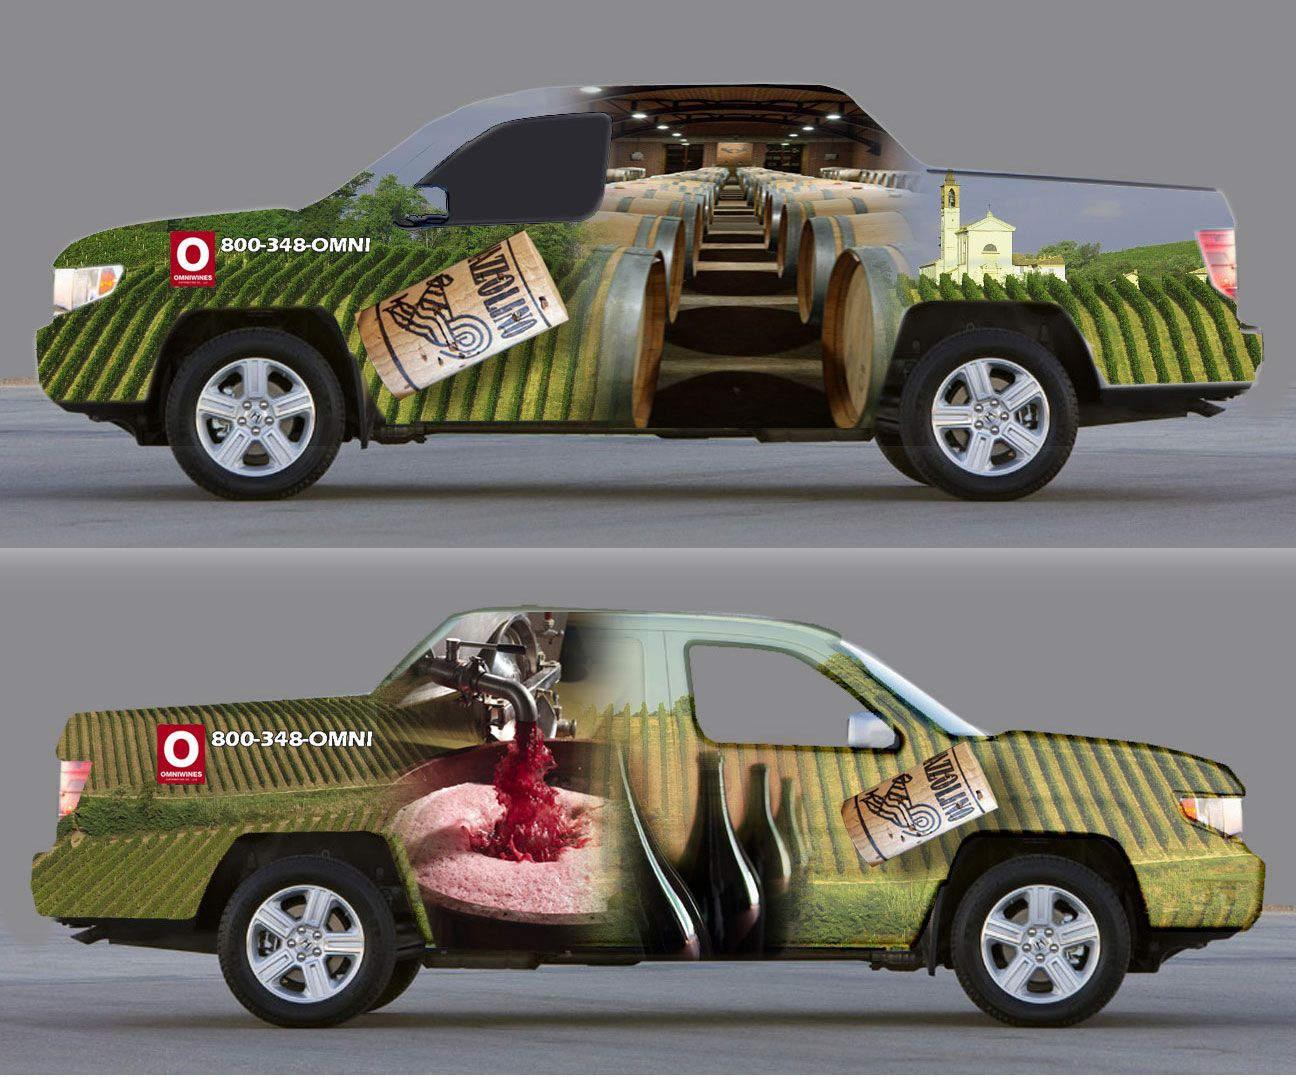 GRAPHIC DESIGN VEHICLE WRAPS | 3D Vehicle Wrap Graphic Design - NY ...